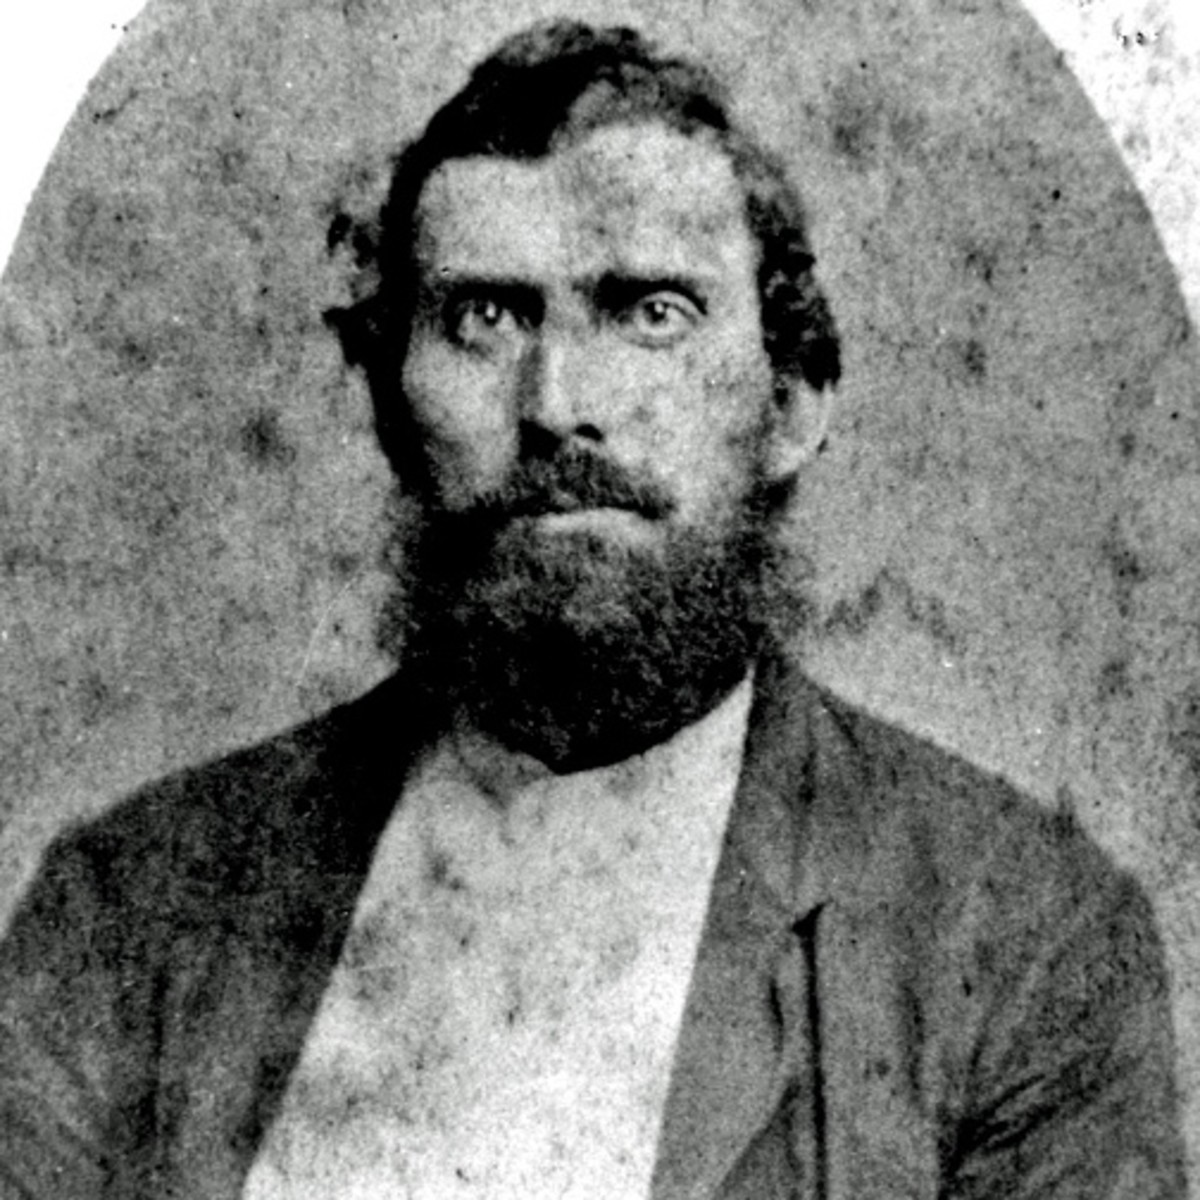 Newton Knight Photo via Wikicommons and MS History Now